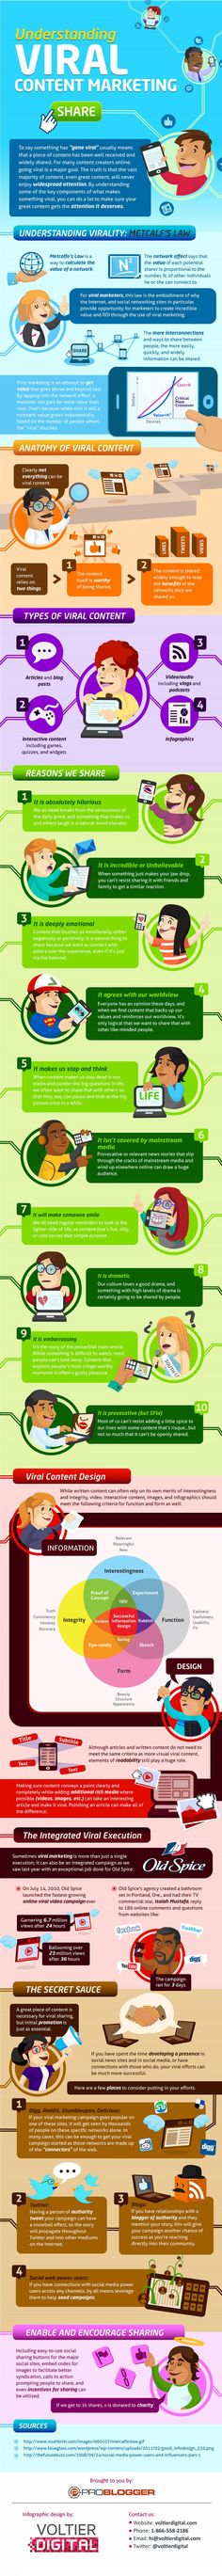 #infografia #socialmedia guía de marketing viral